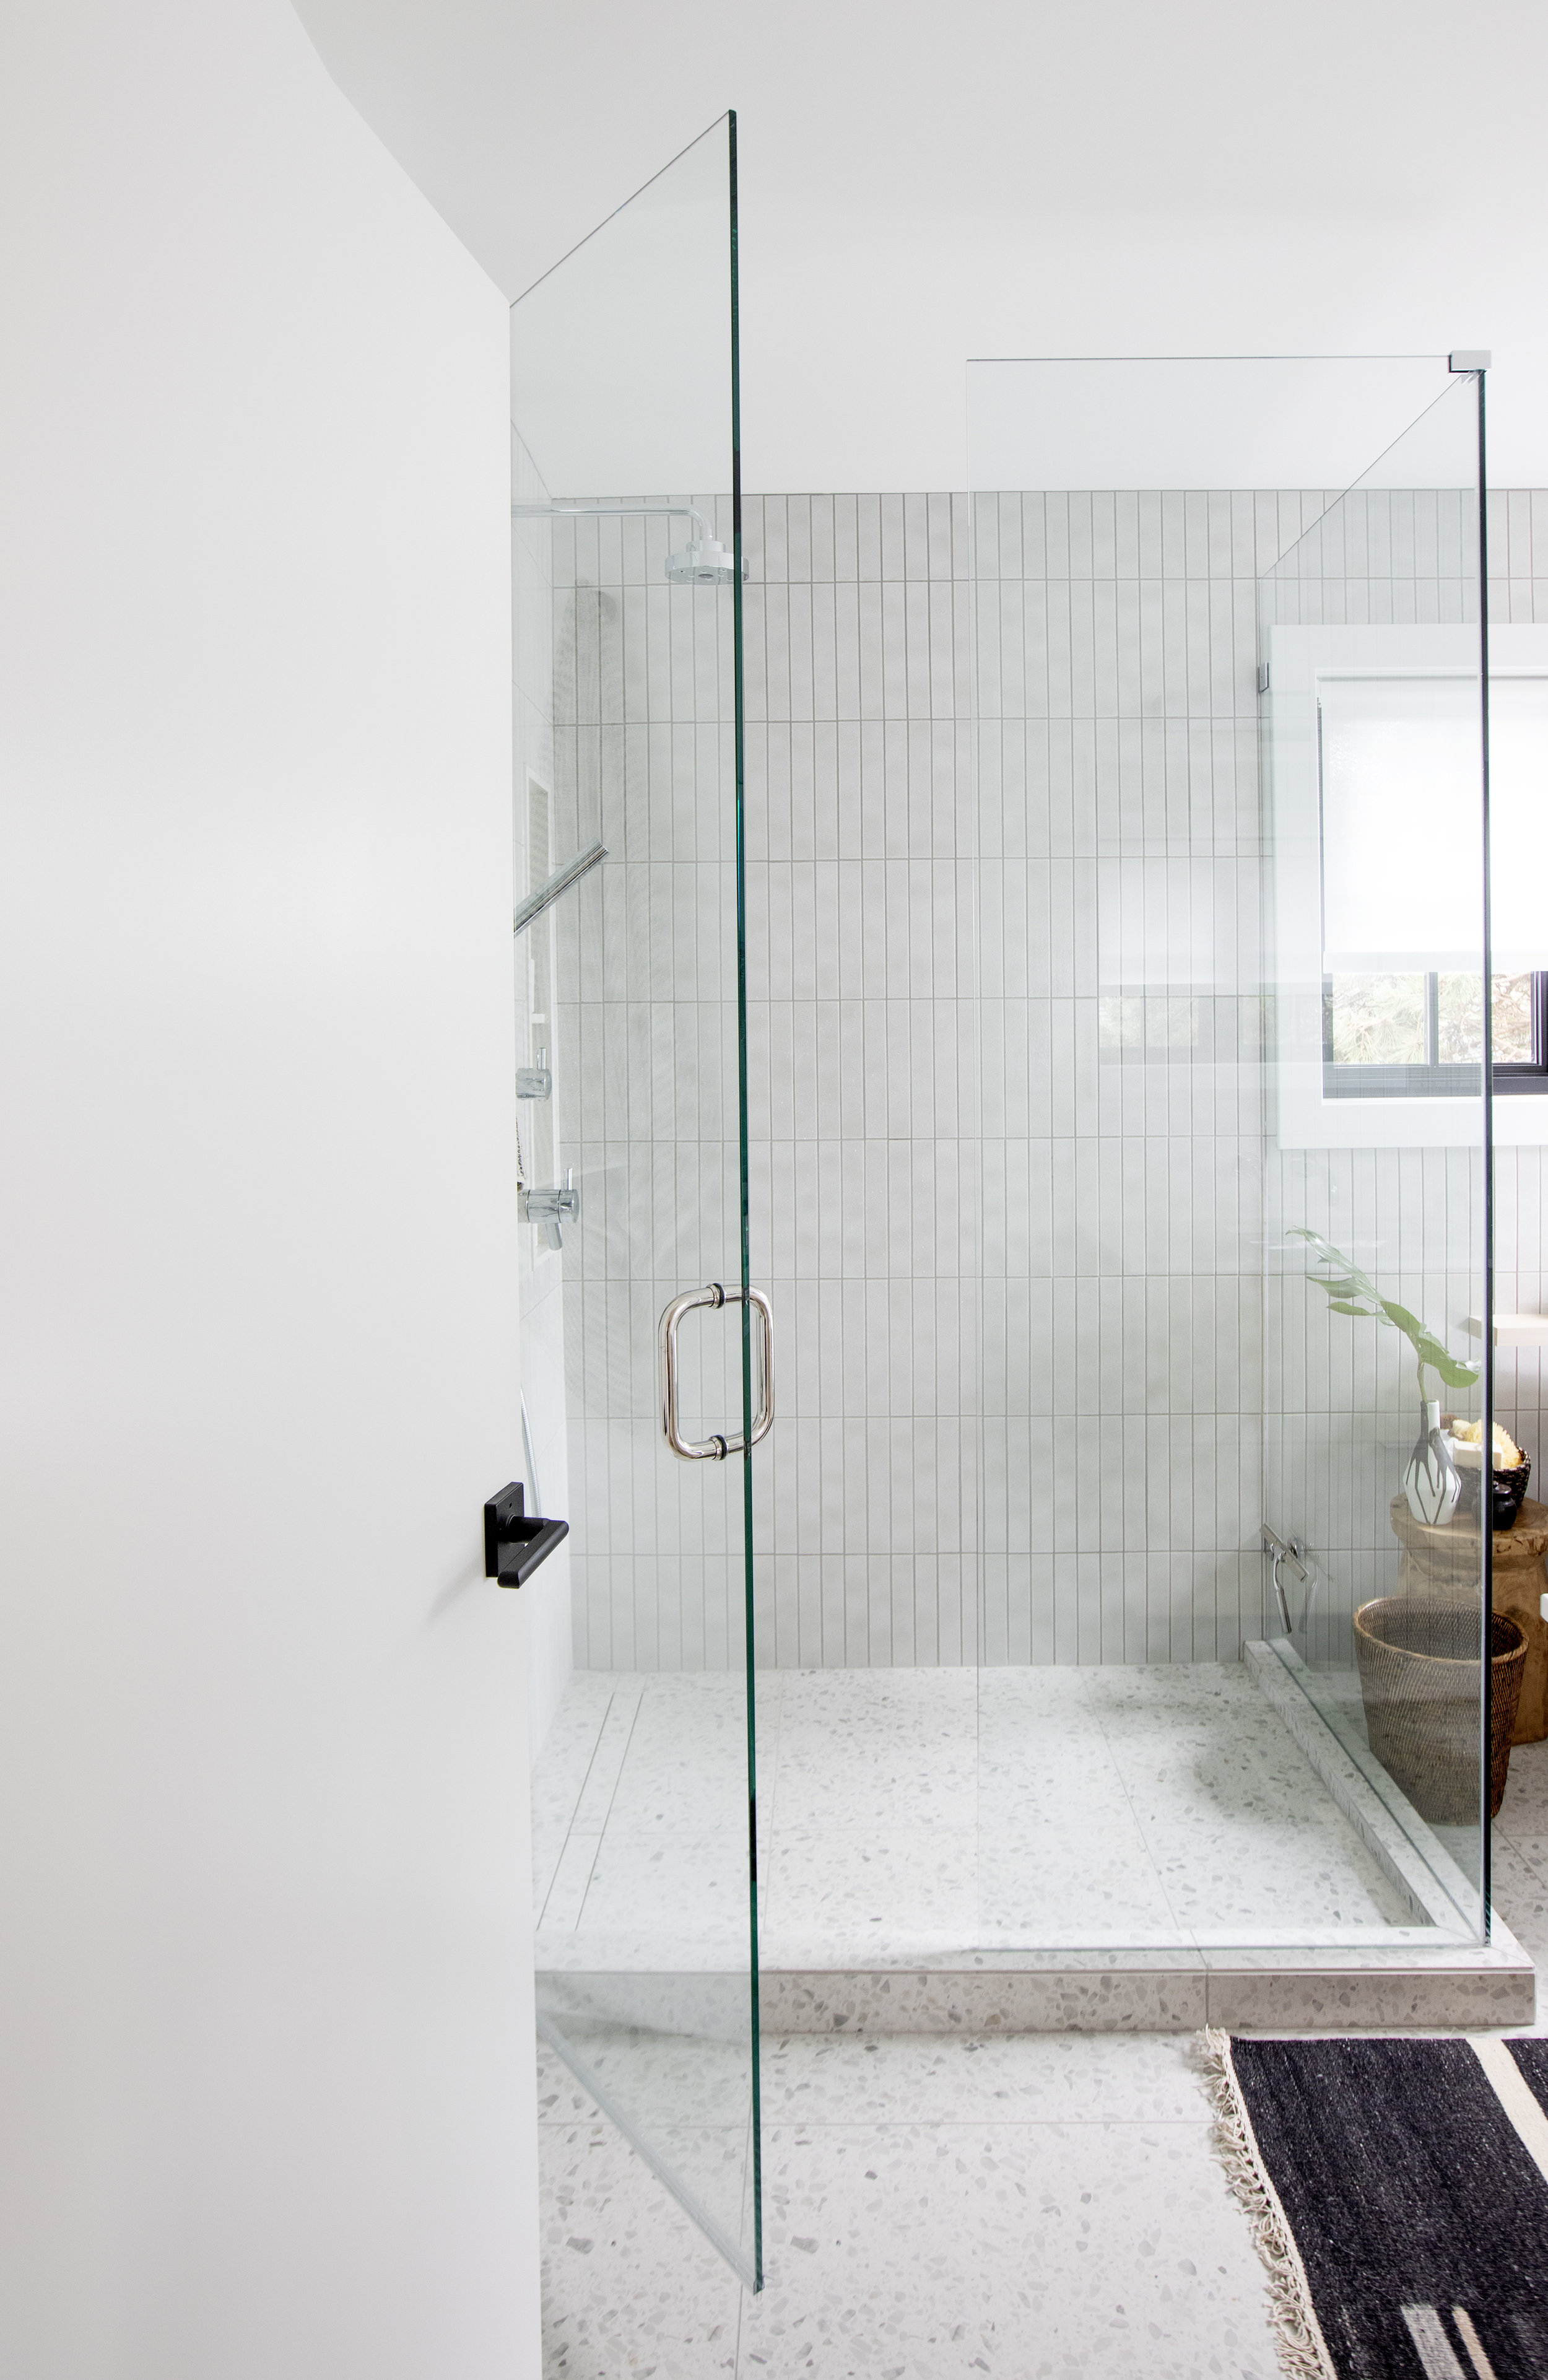 The master bathroom at Alderfield place features a large, luxurious walk in shower